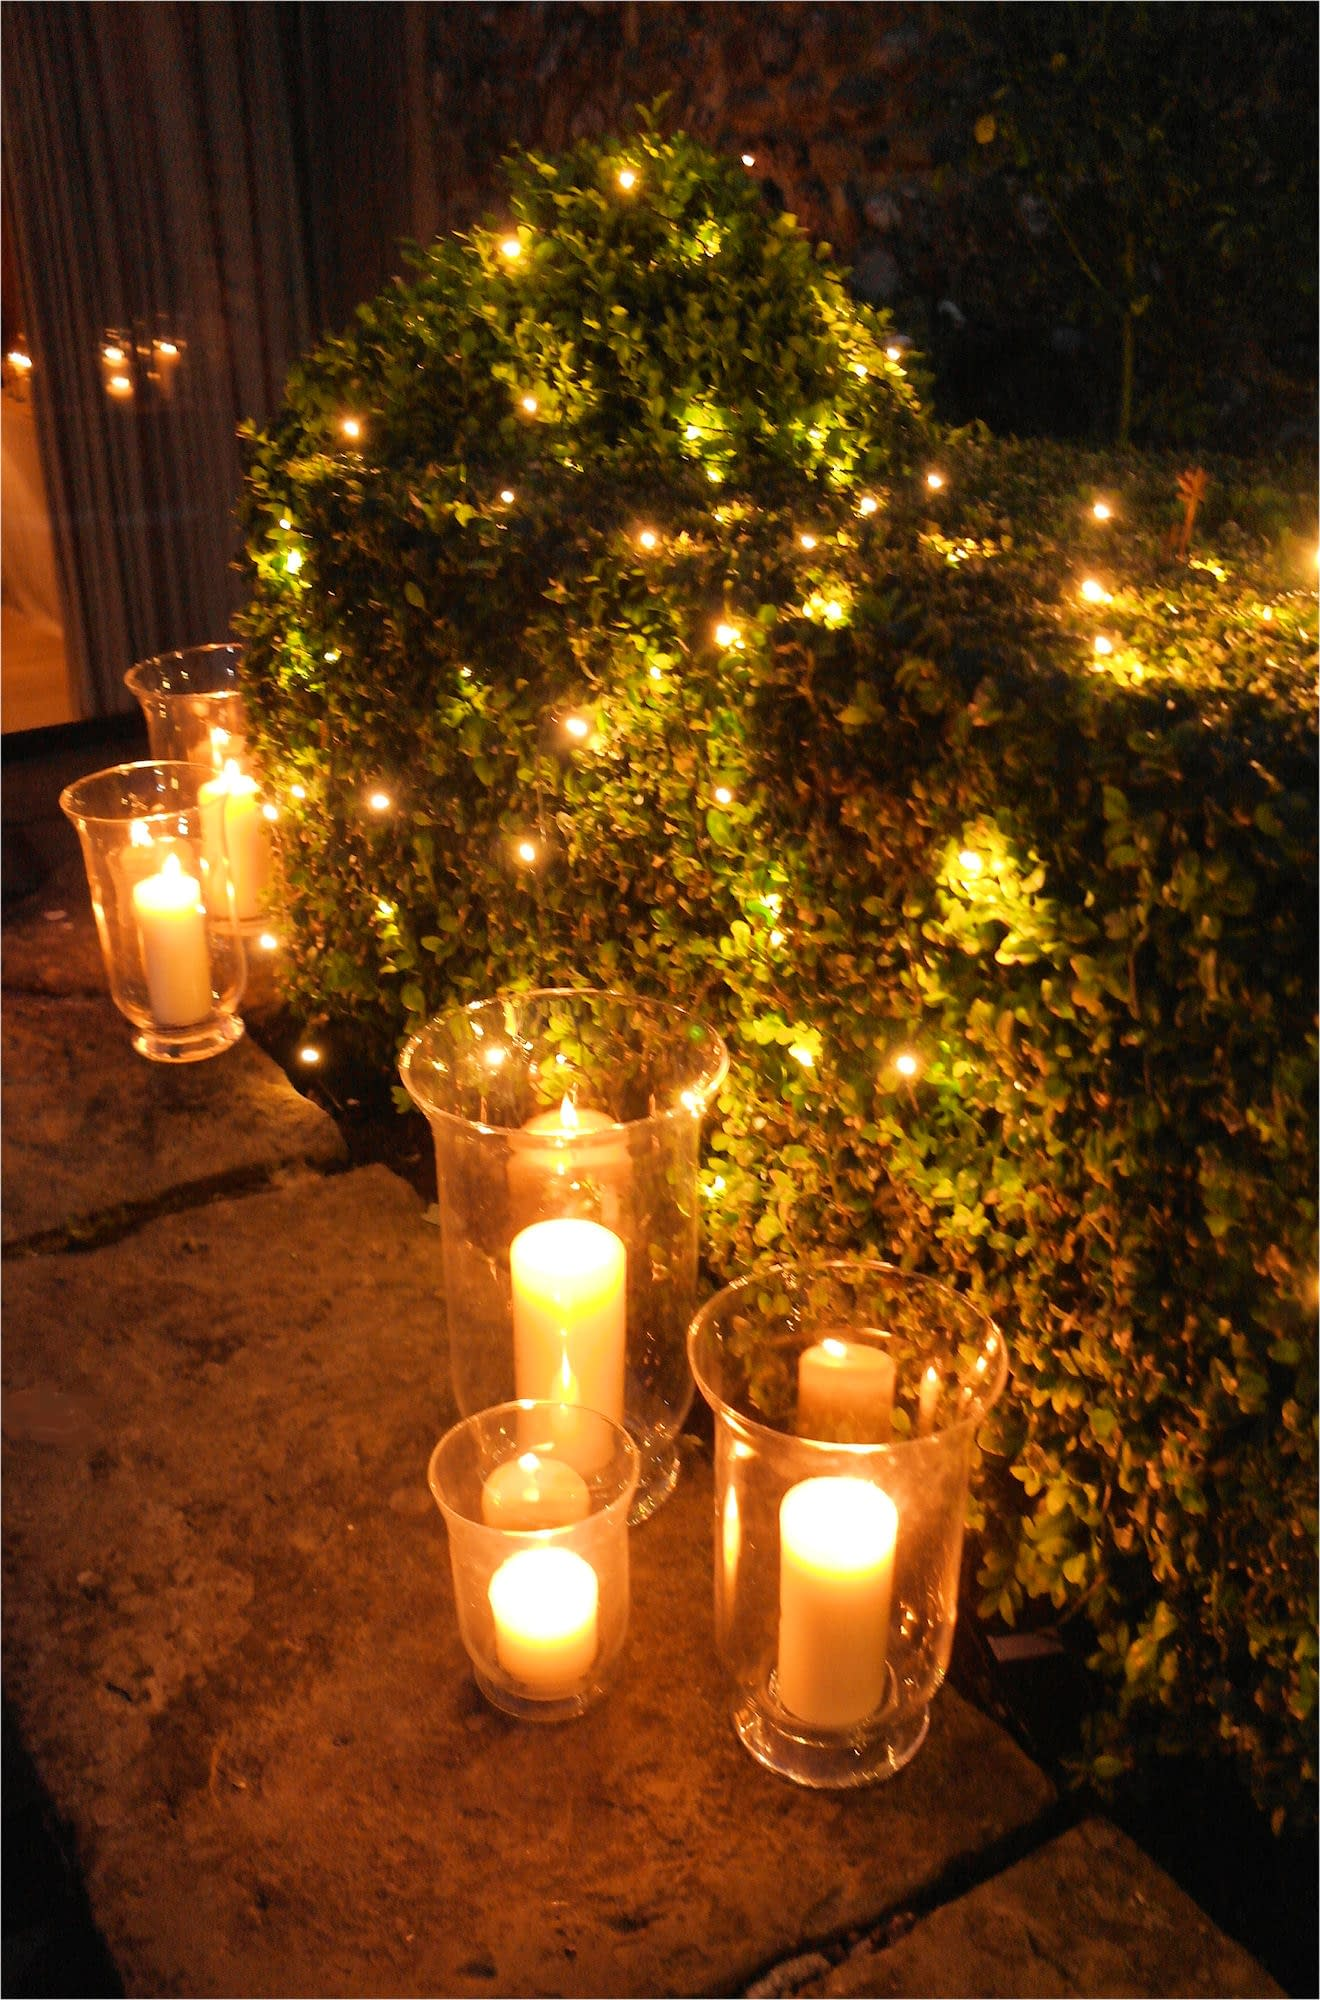 Fairy lights in bushes and storm lantern decoration at Chaucer Barn, UK wedding venue